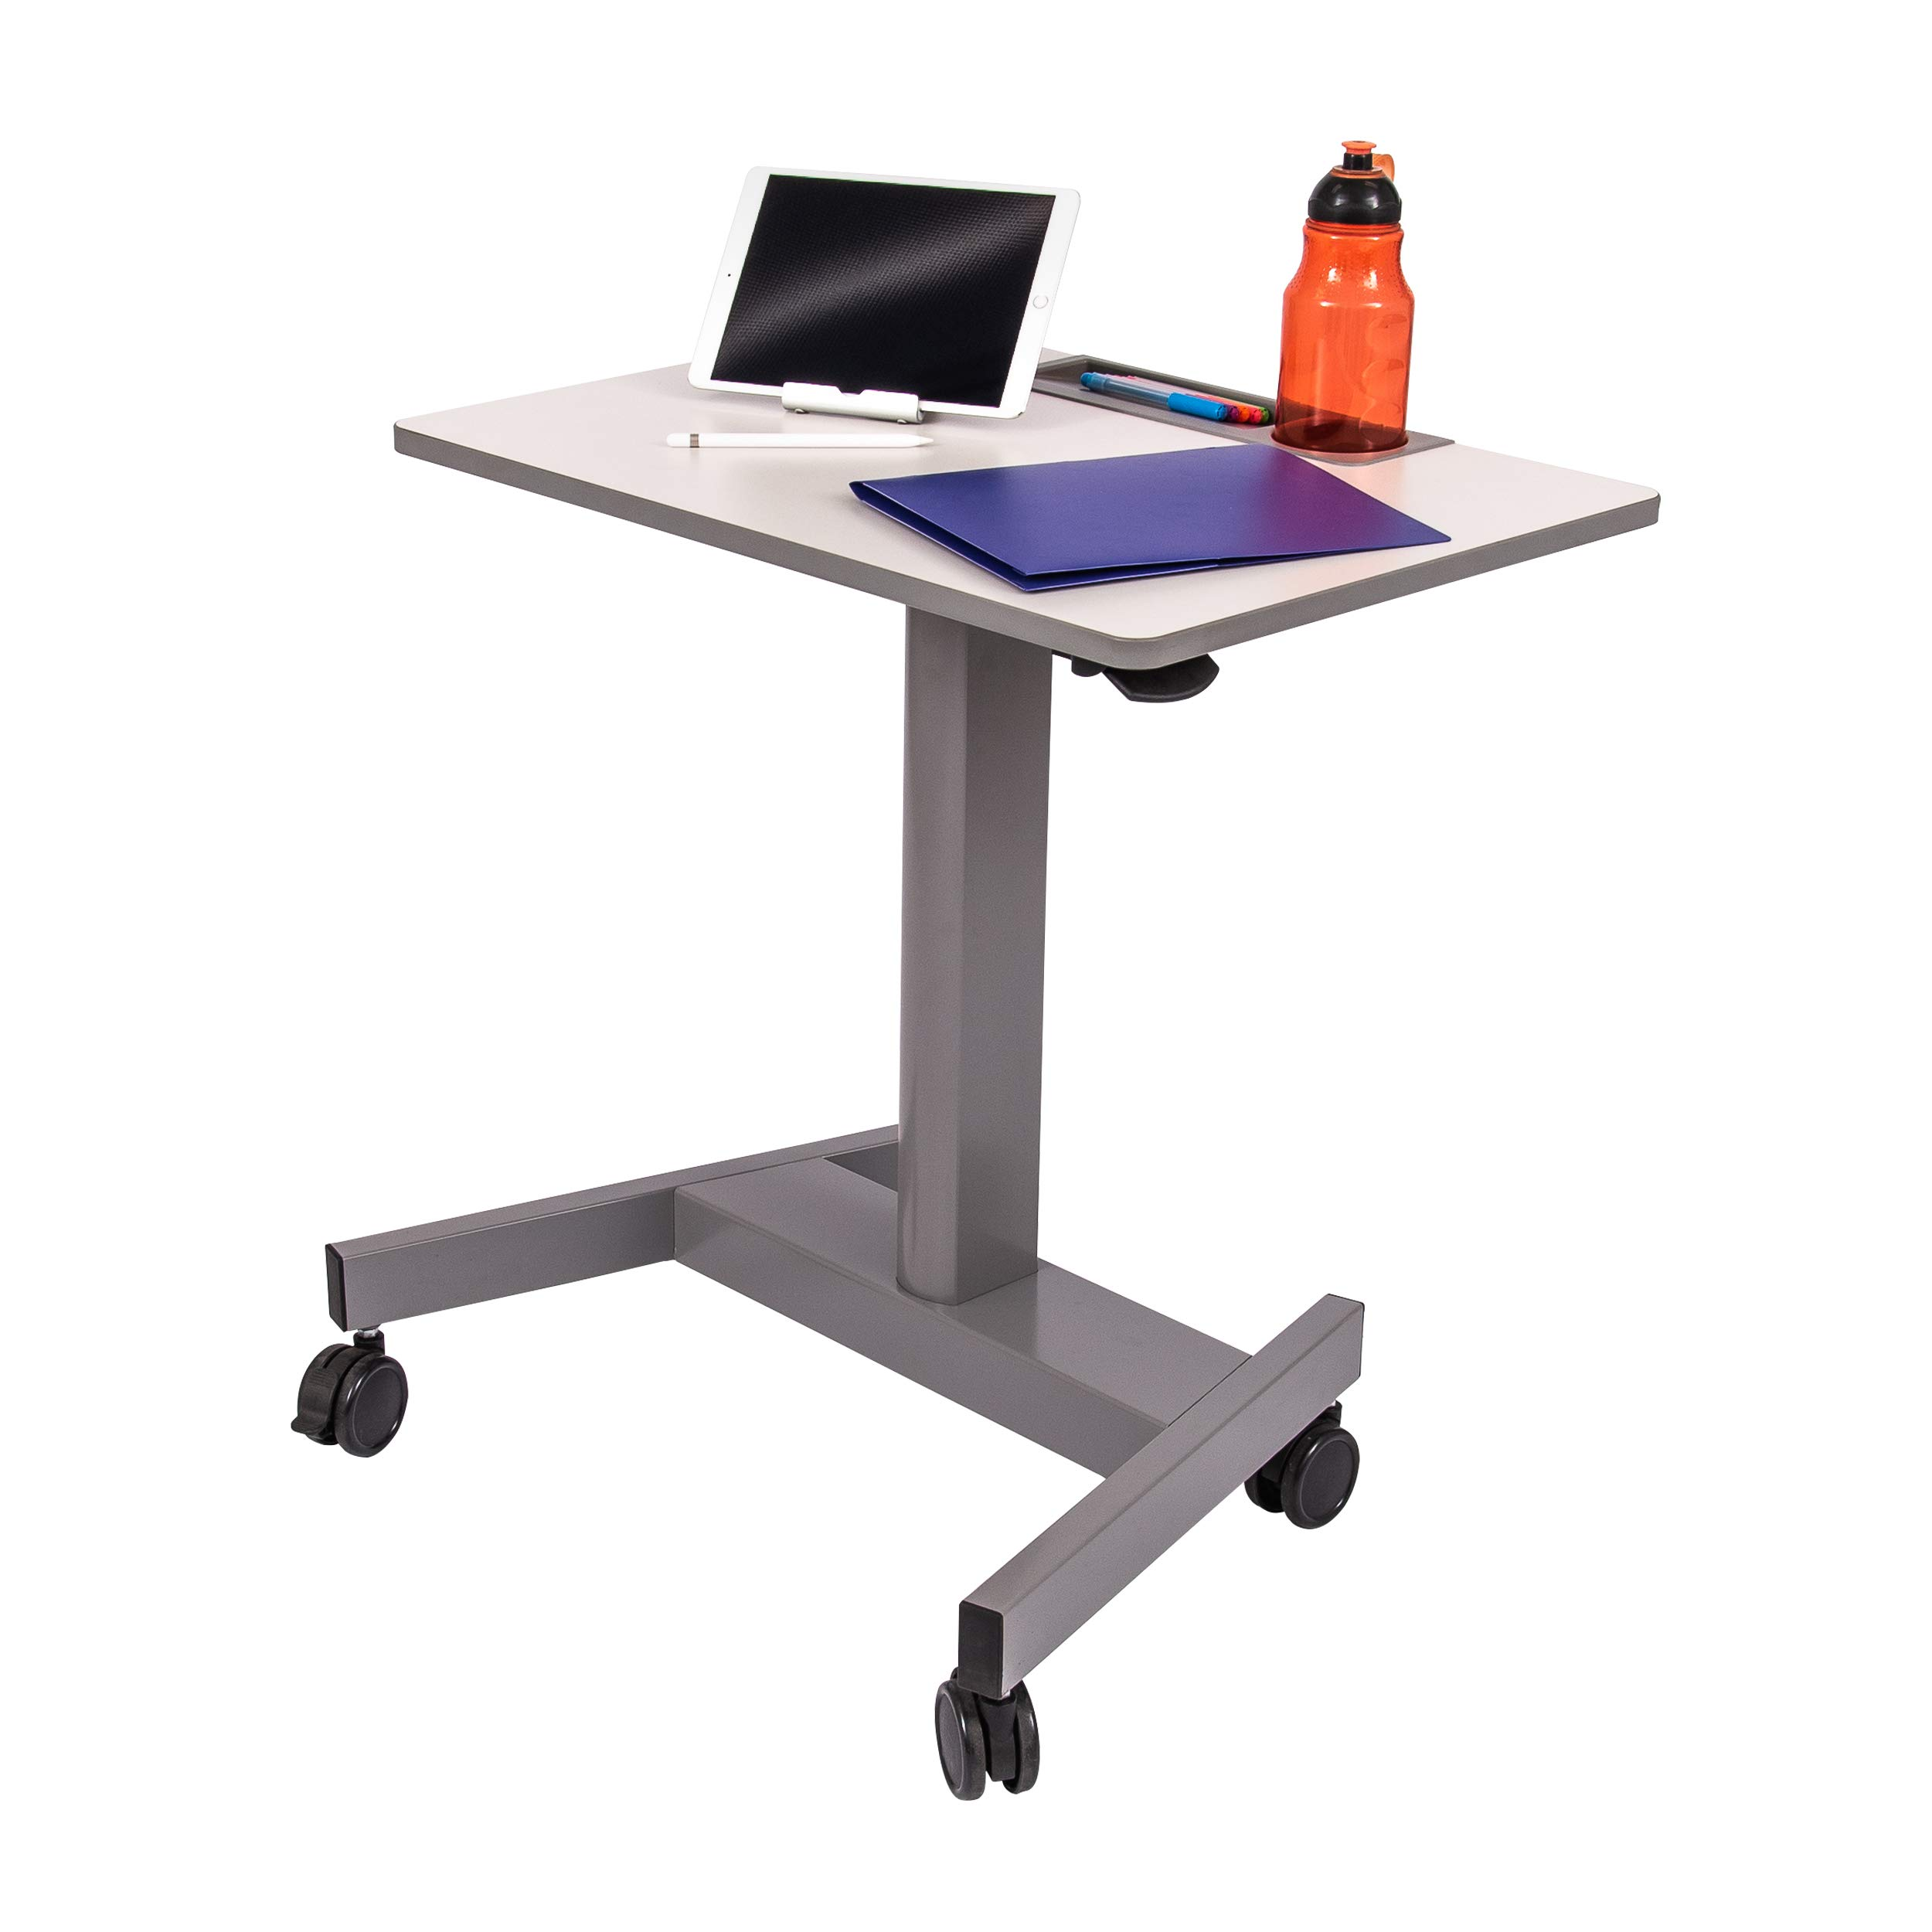 Pneumatic Adjustable Height Student Desk | Classroom Desk - Lets Kids Stand or Sit While They Learn, 27.5'' W by Stand Up Desk Store